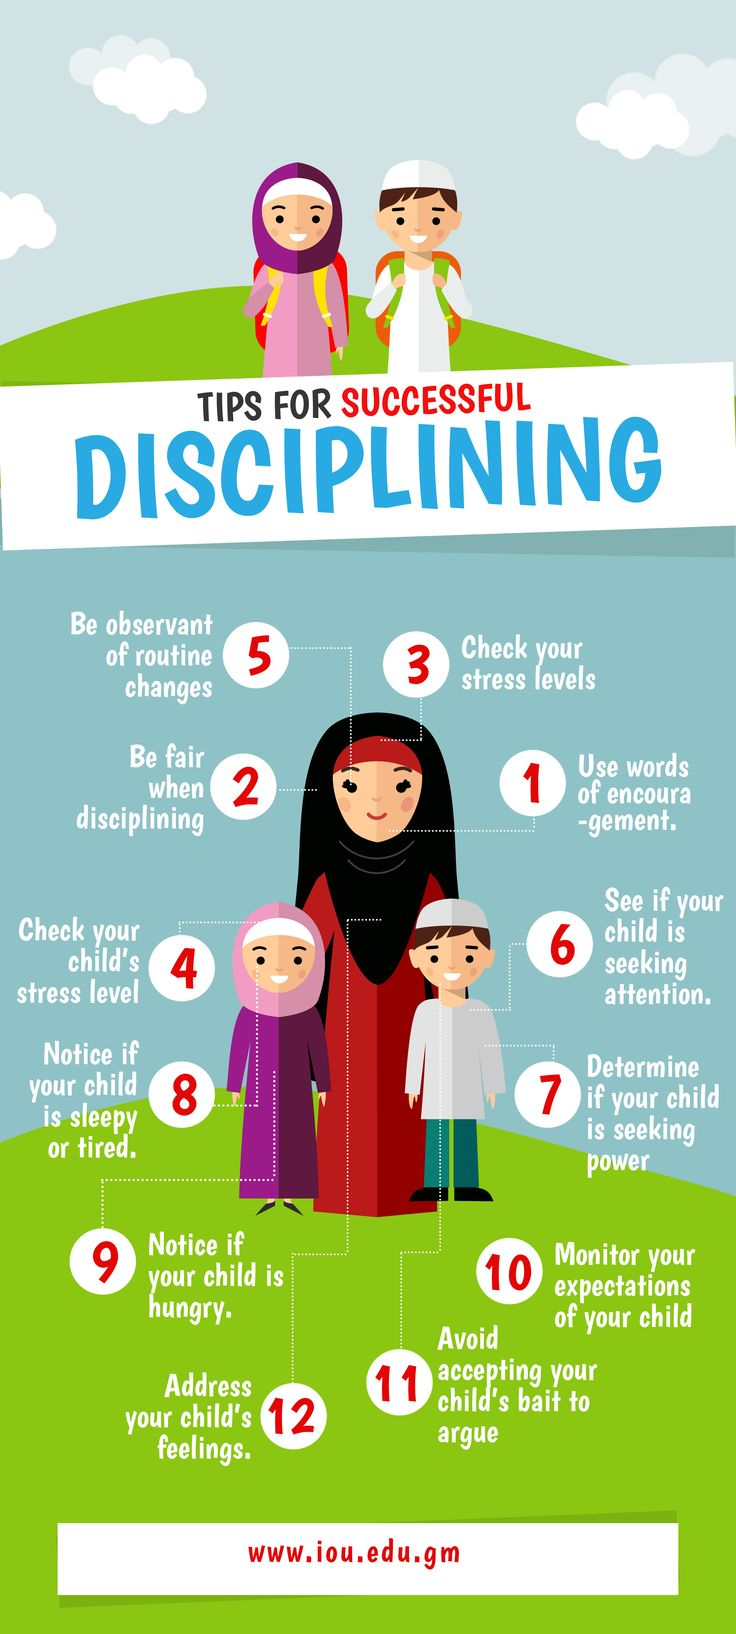 17 Best Images About Islam On Pinterest Muslim Women